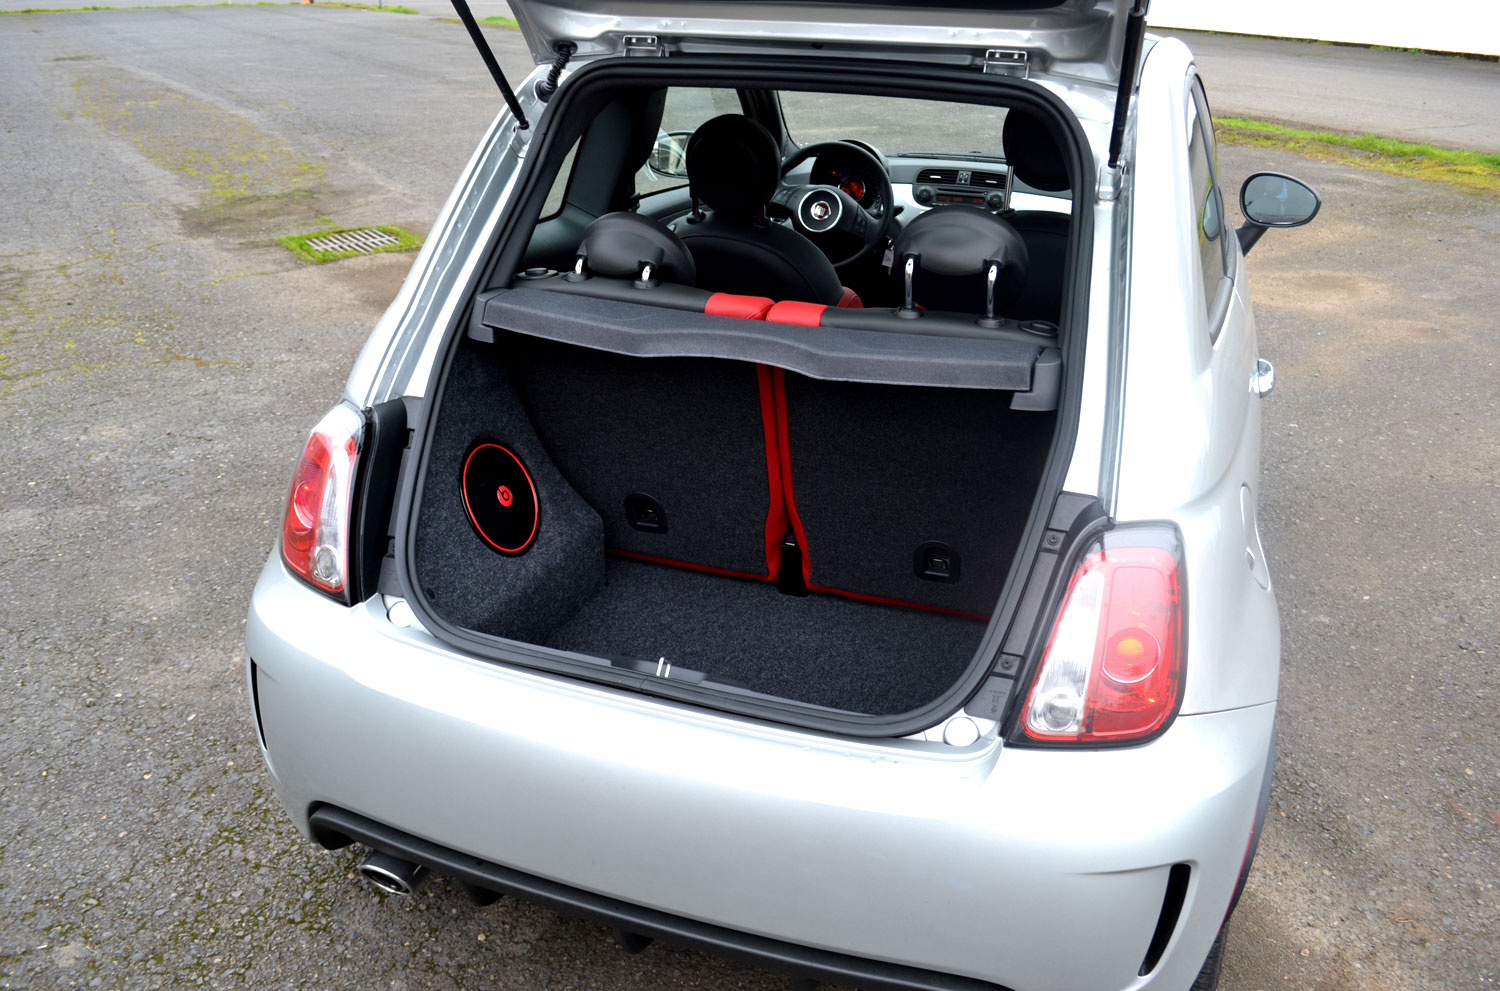 fiat 500 abarth convertible automatic trunk photos for sale Picture free download image